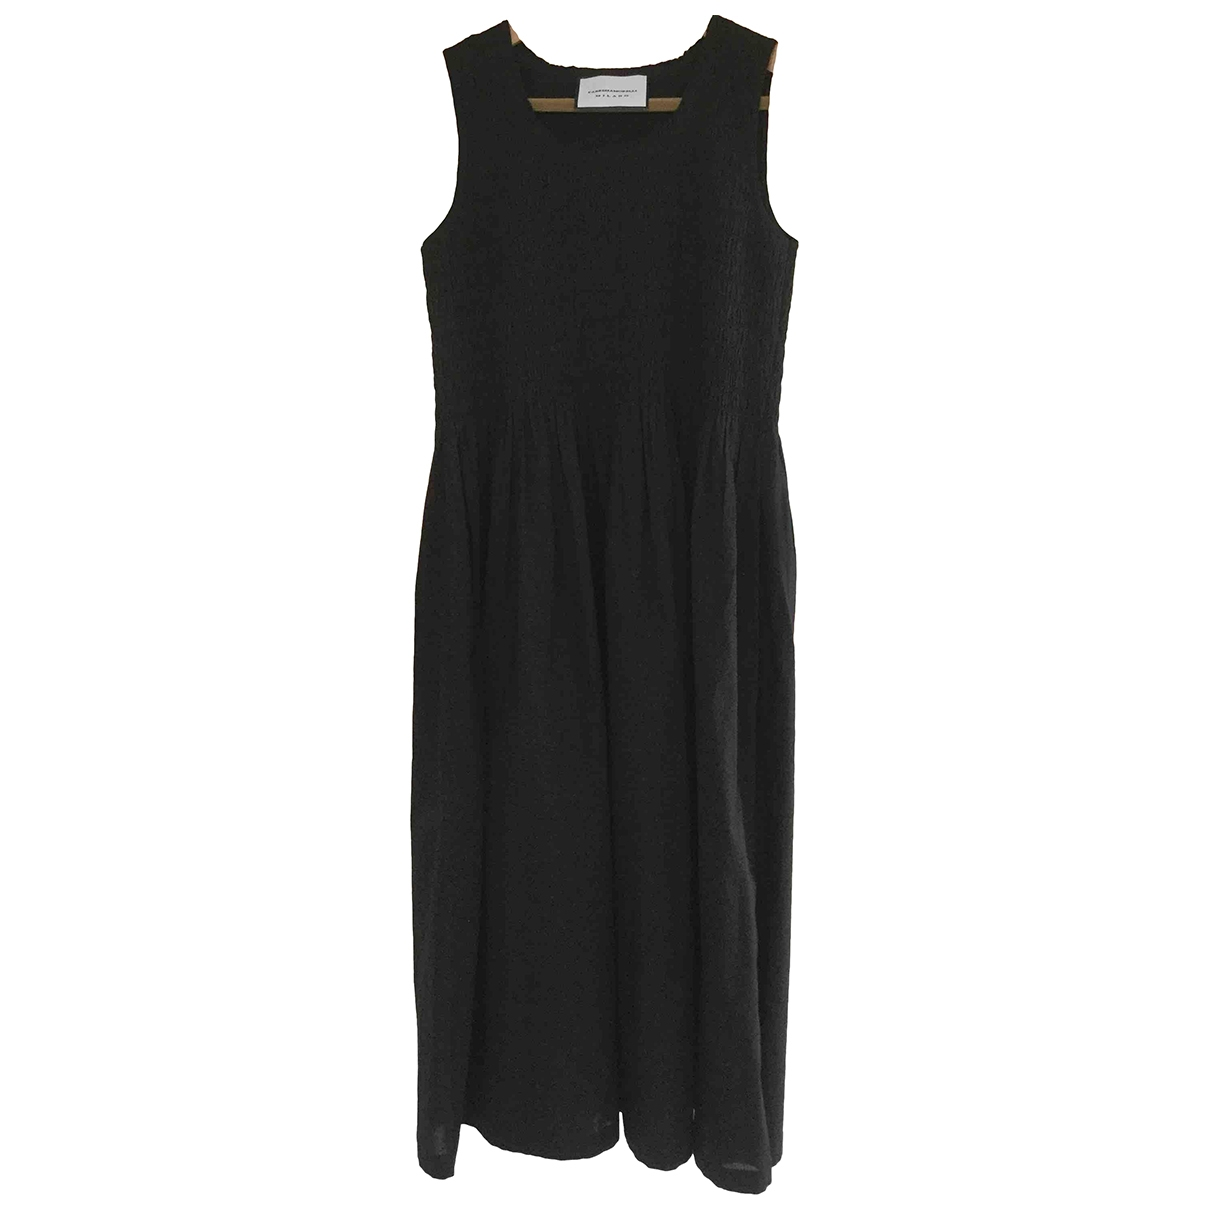 Non Signé / Unsigned Hippie Chic Black Cotton dress for Women One Size International